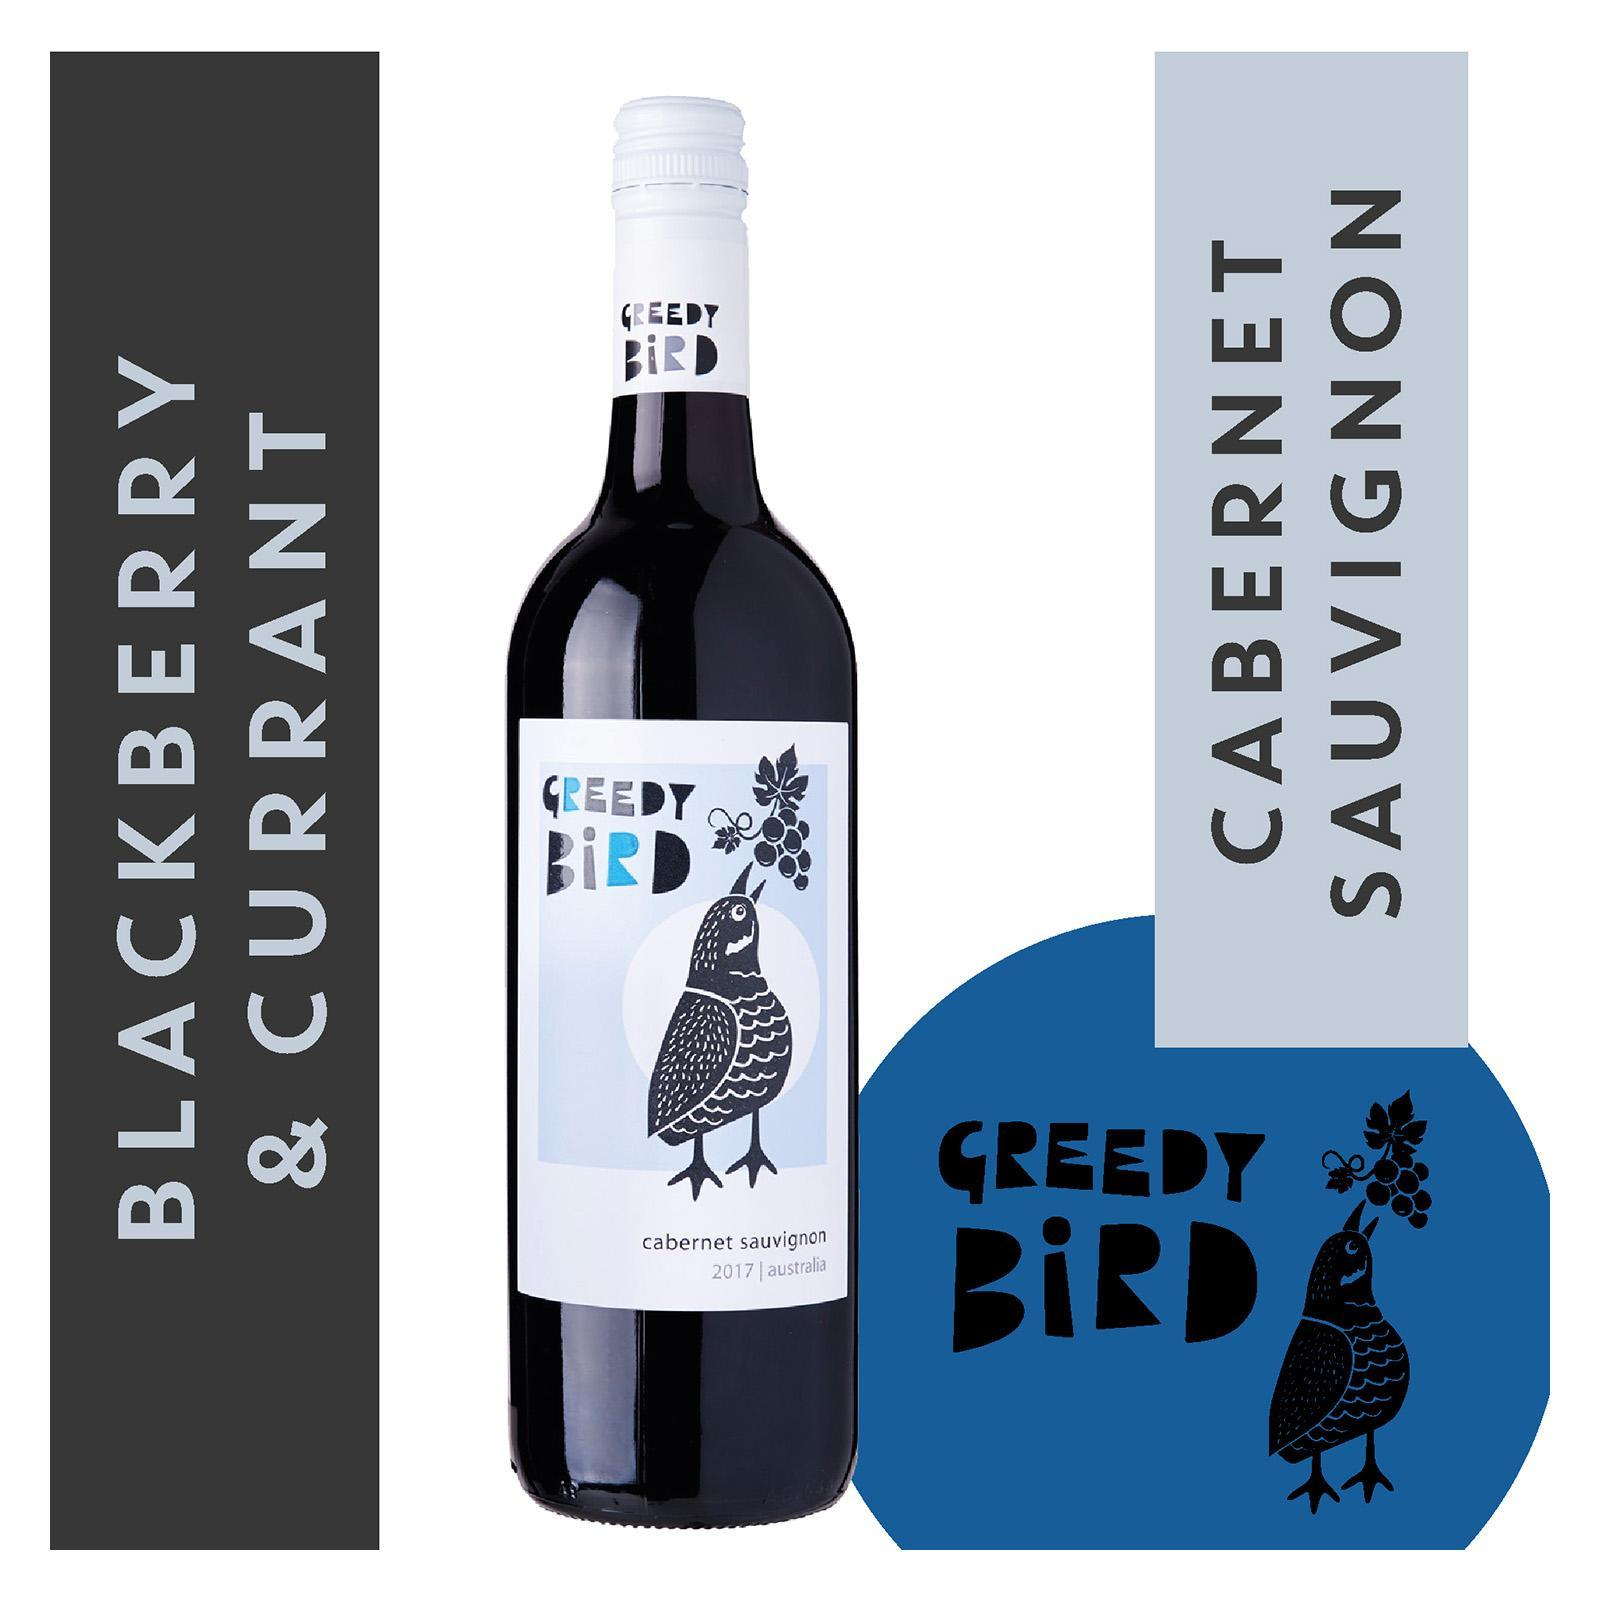 Greedy Bird South Australia Cabernet Sauvignon Red Wine